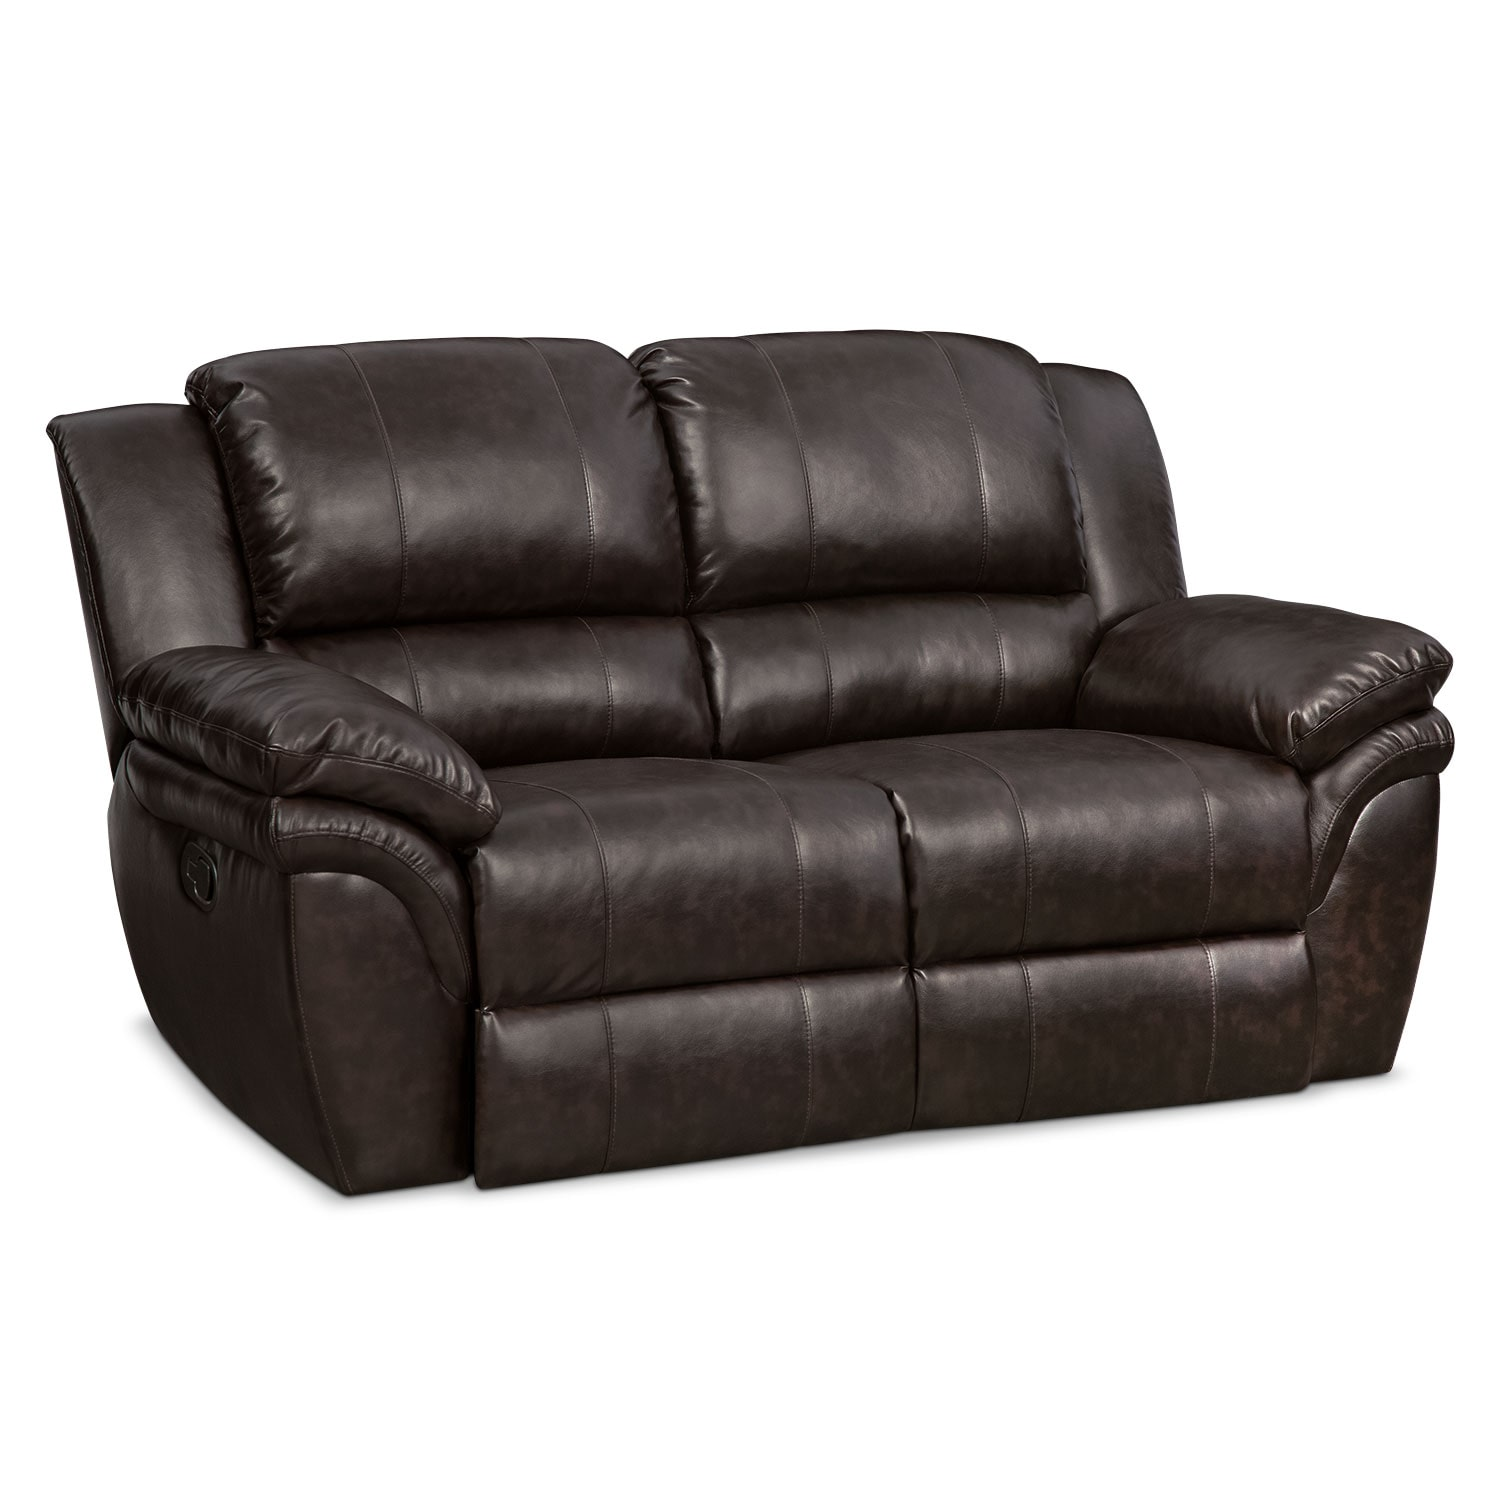 aldo manual reclining loveseat brown by factory outlet